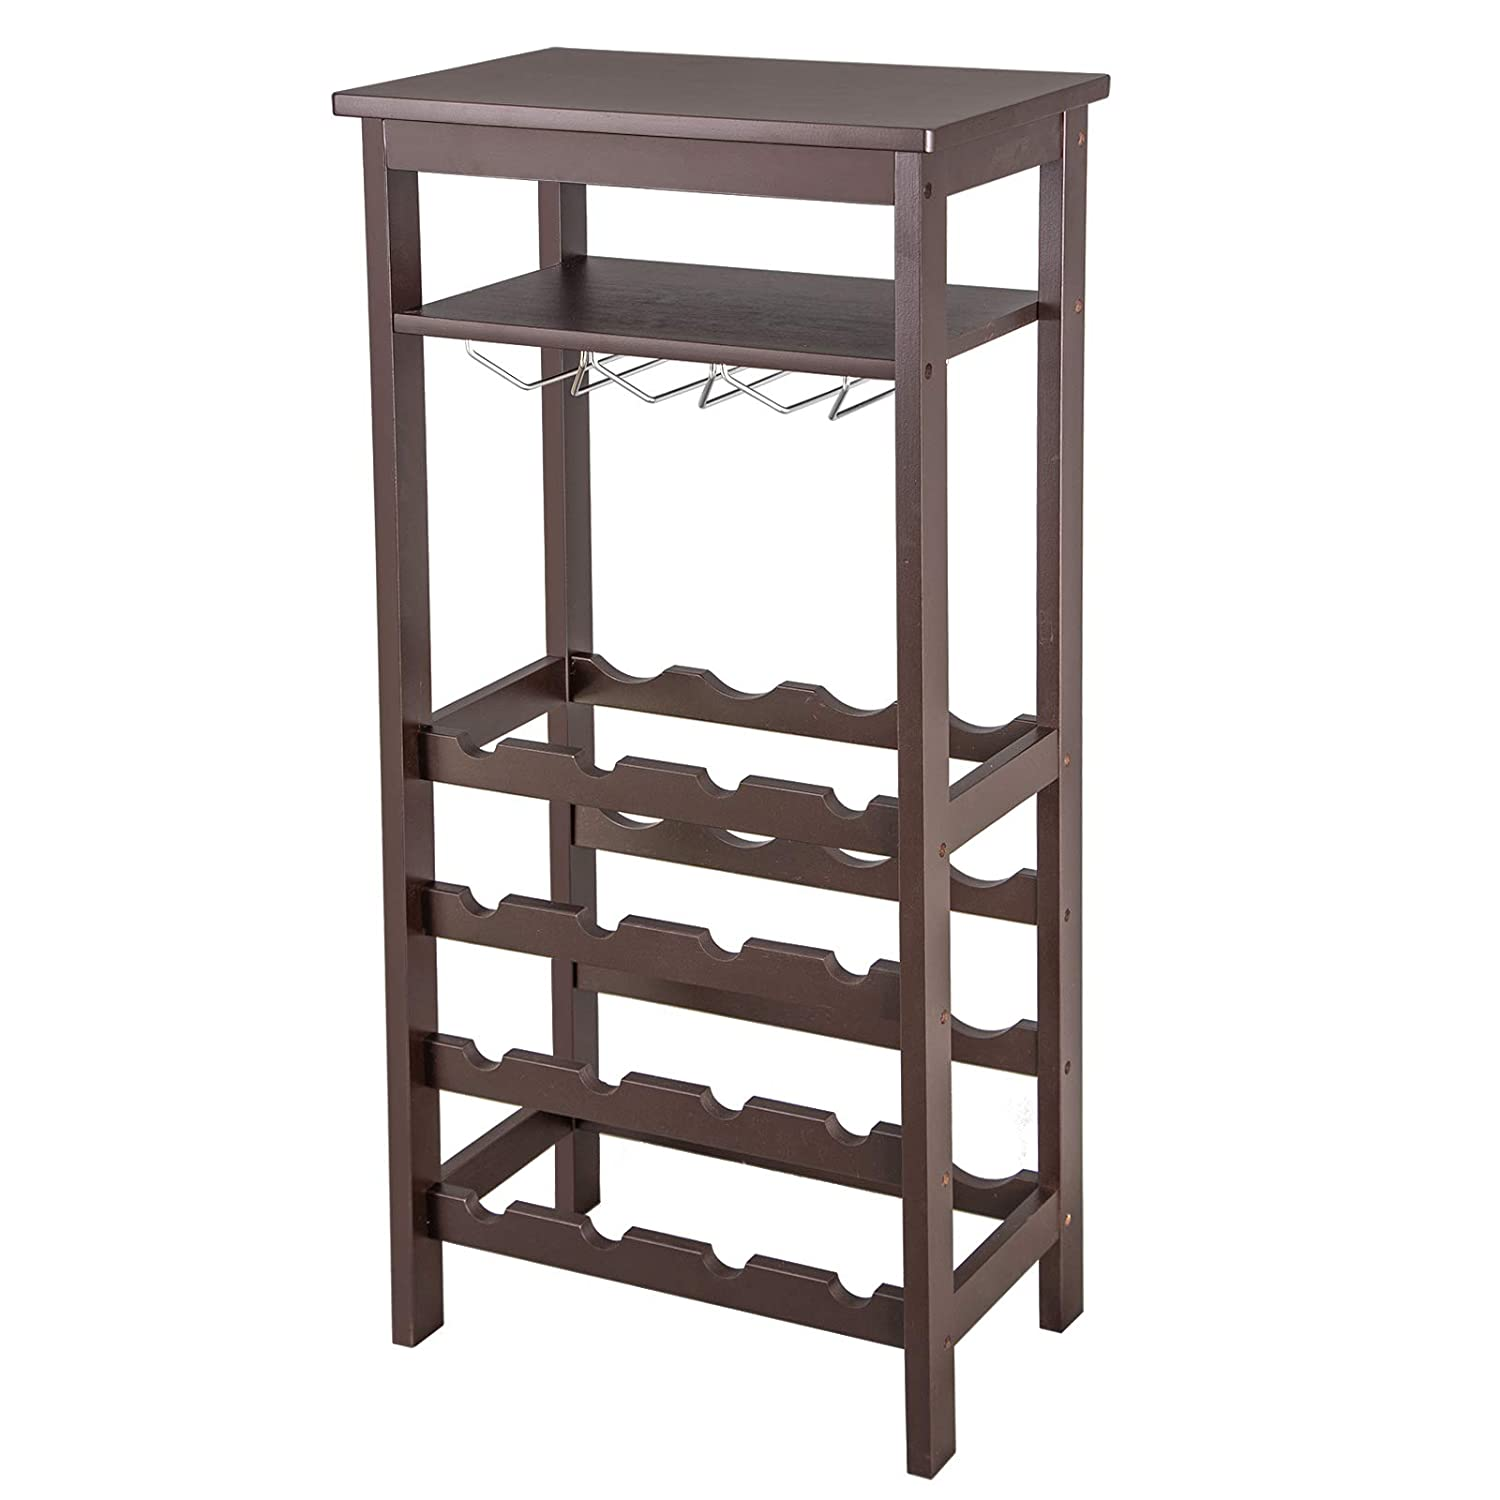 Smartxchoices 16 Bottle Wine Rack with Glass Holder and Tabletop, Bamboo Wine Bottle Shelf Free Standing Floor Wine Storage Holder Display Shelves (Bamboo, Espresso)